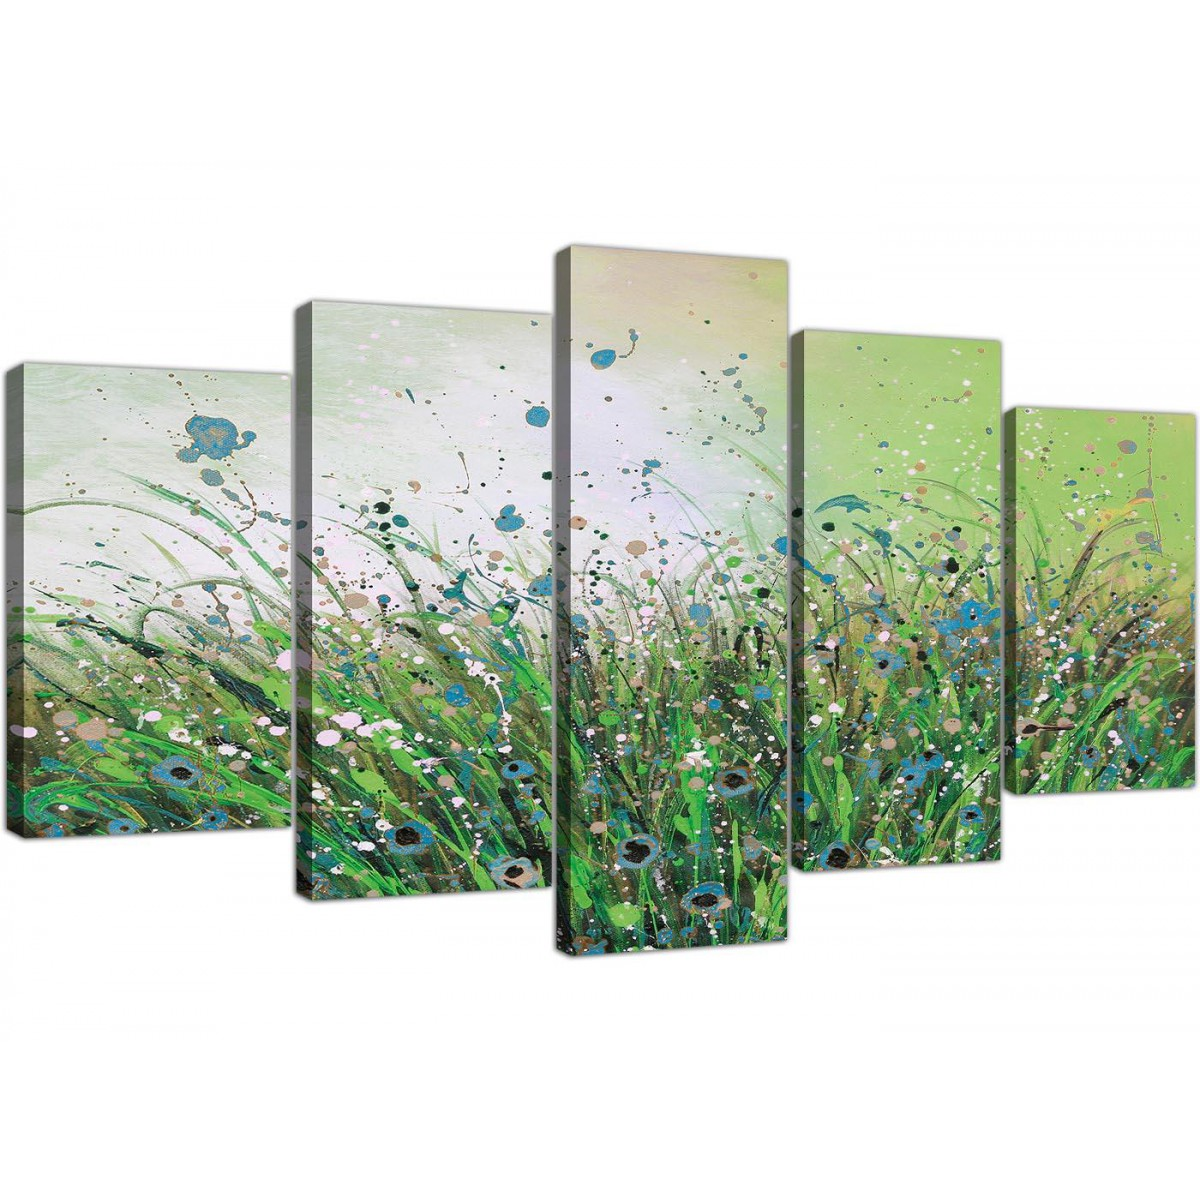 Extra Large Floral Abstract Canvas Wall Art In Green